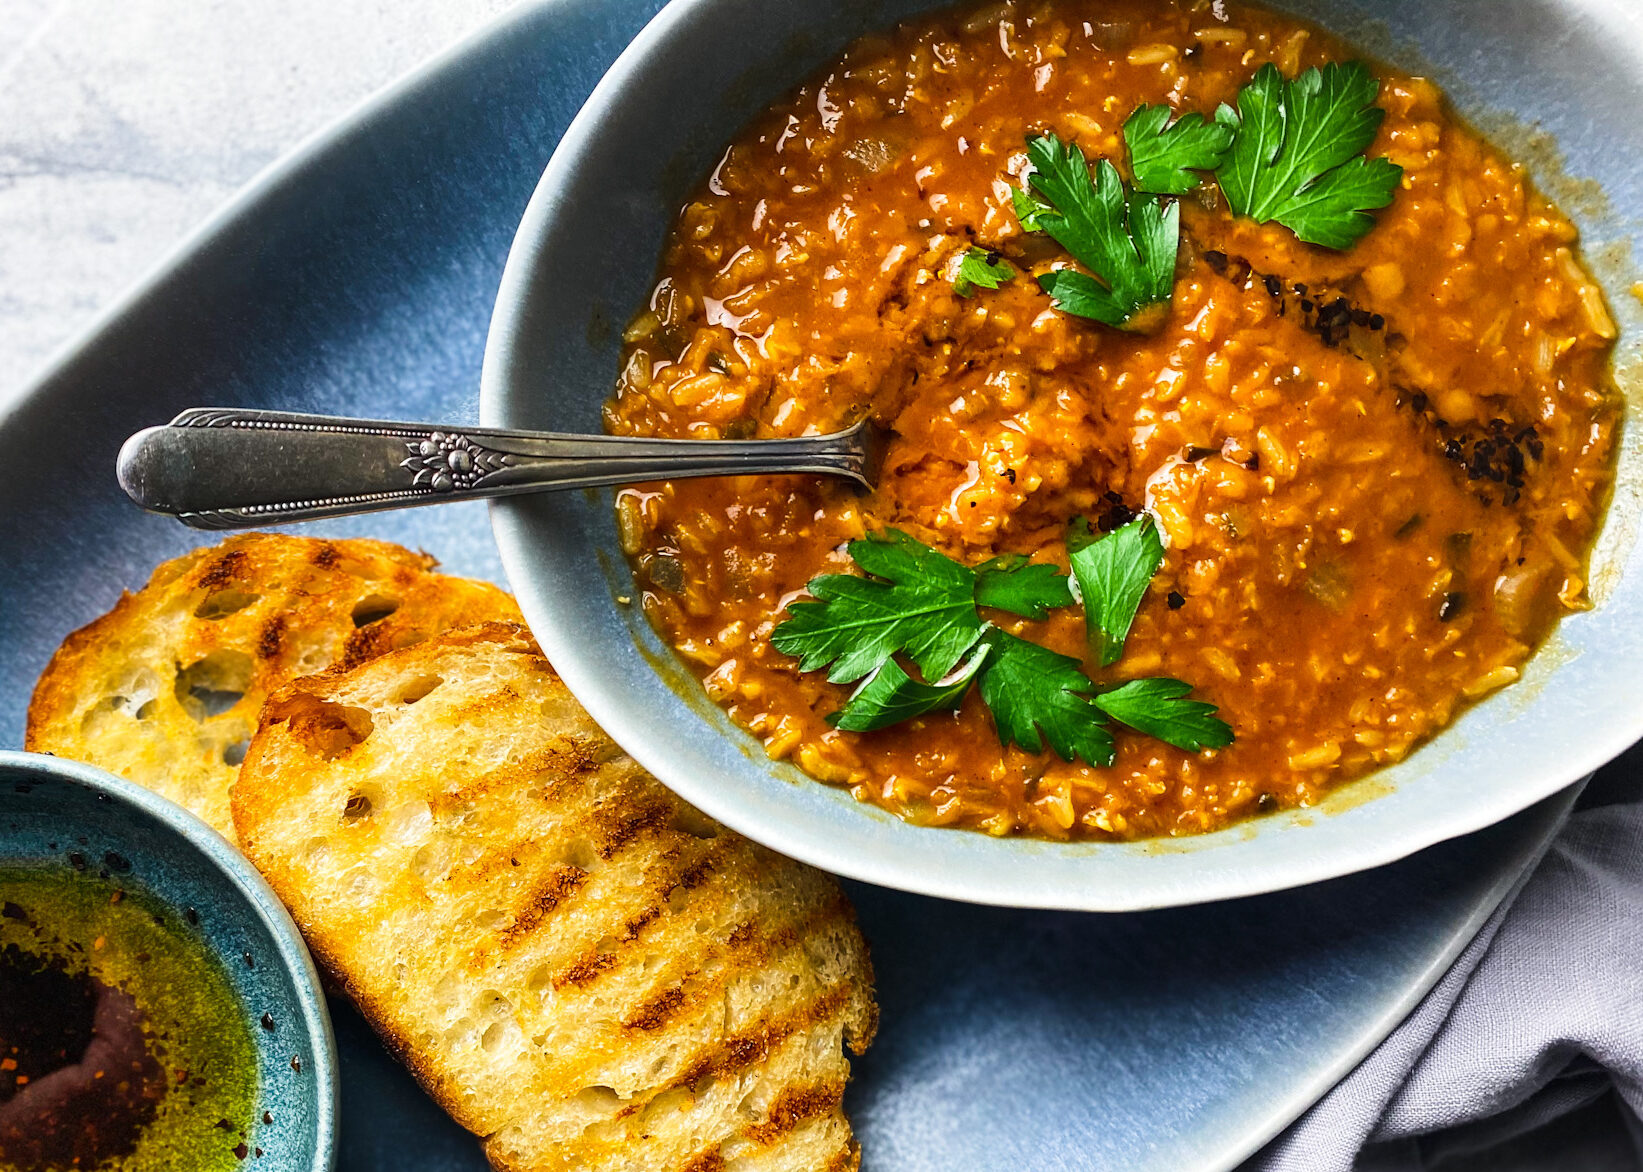 red lentil soup with parsley, grilled sourdough and toasted Aleppo pepper olive oil.